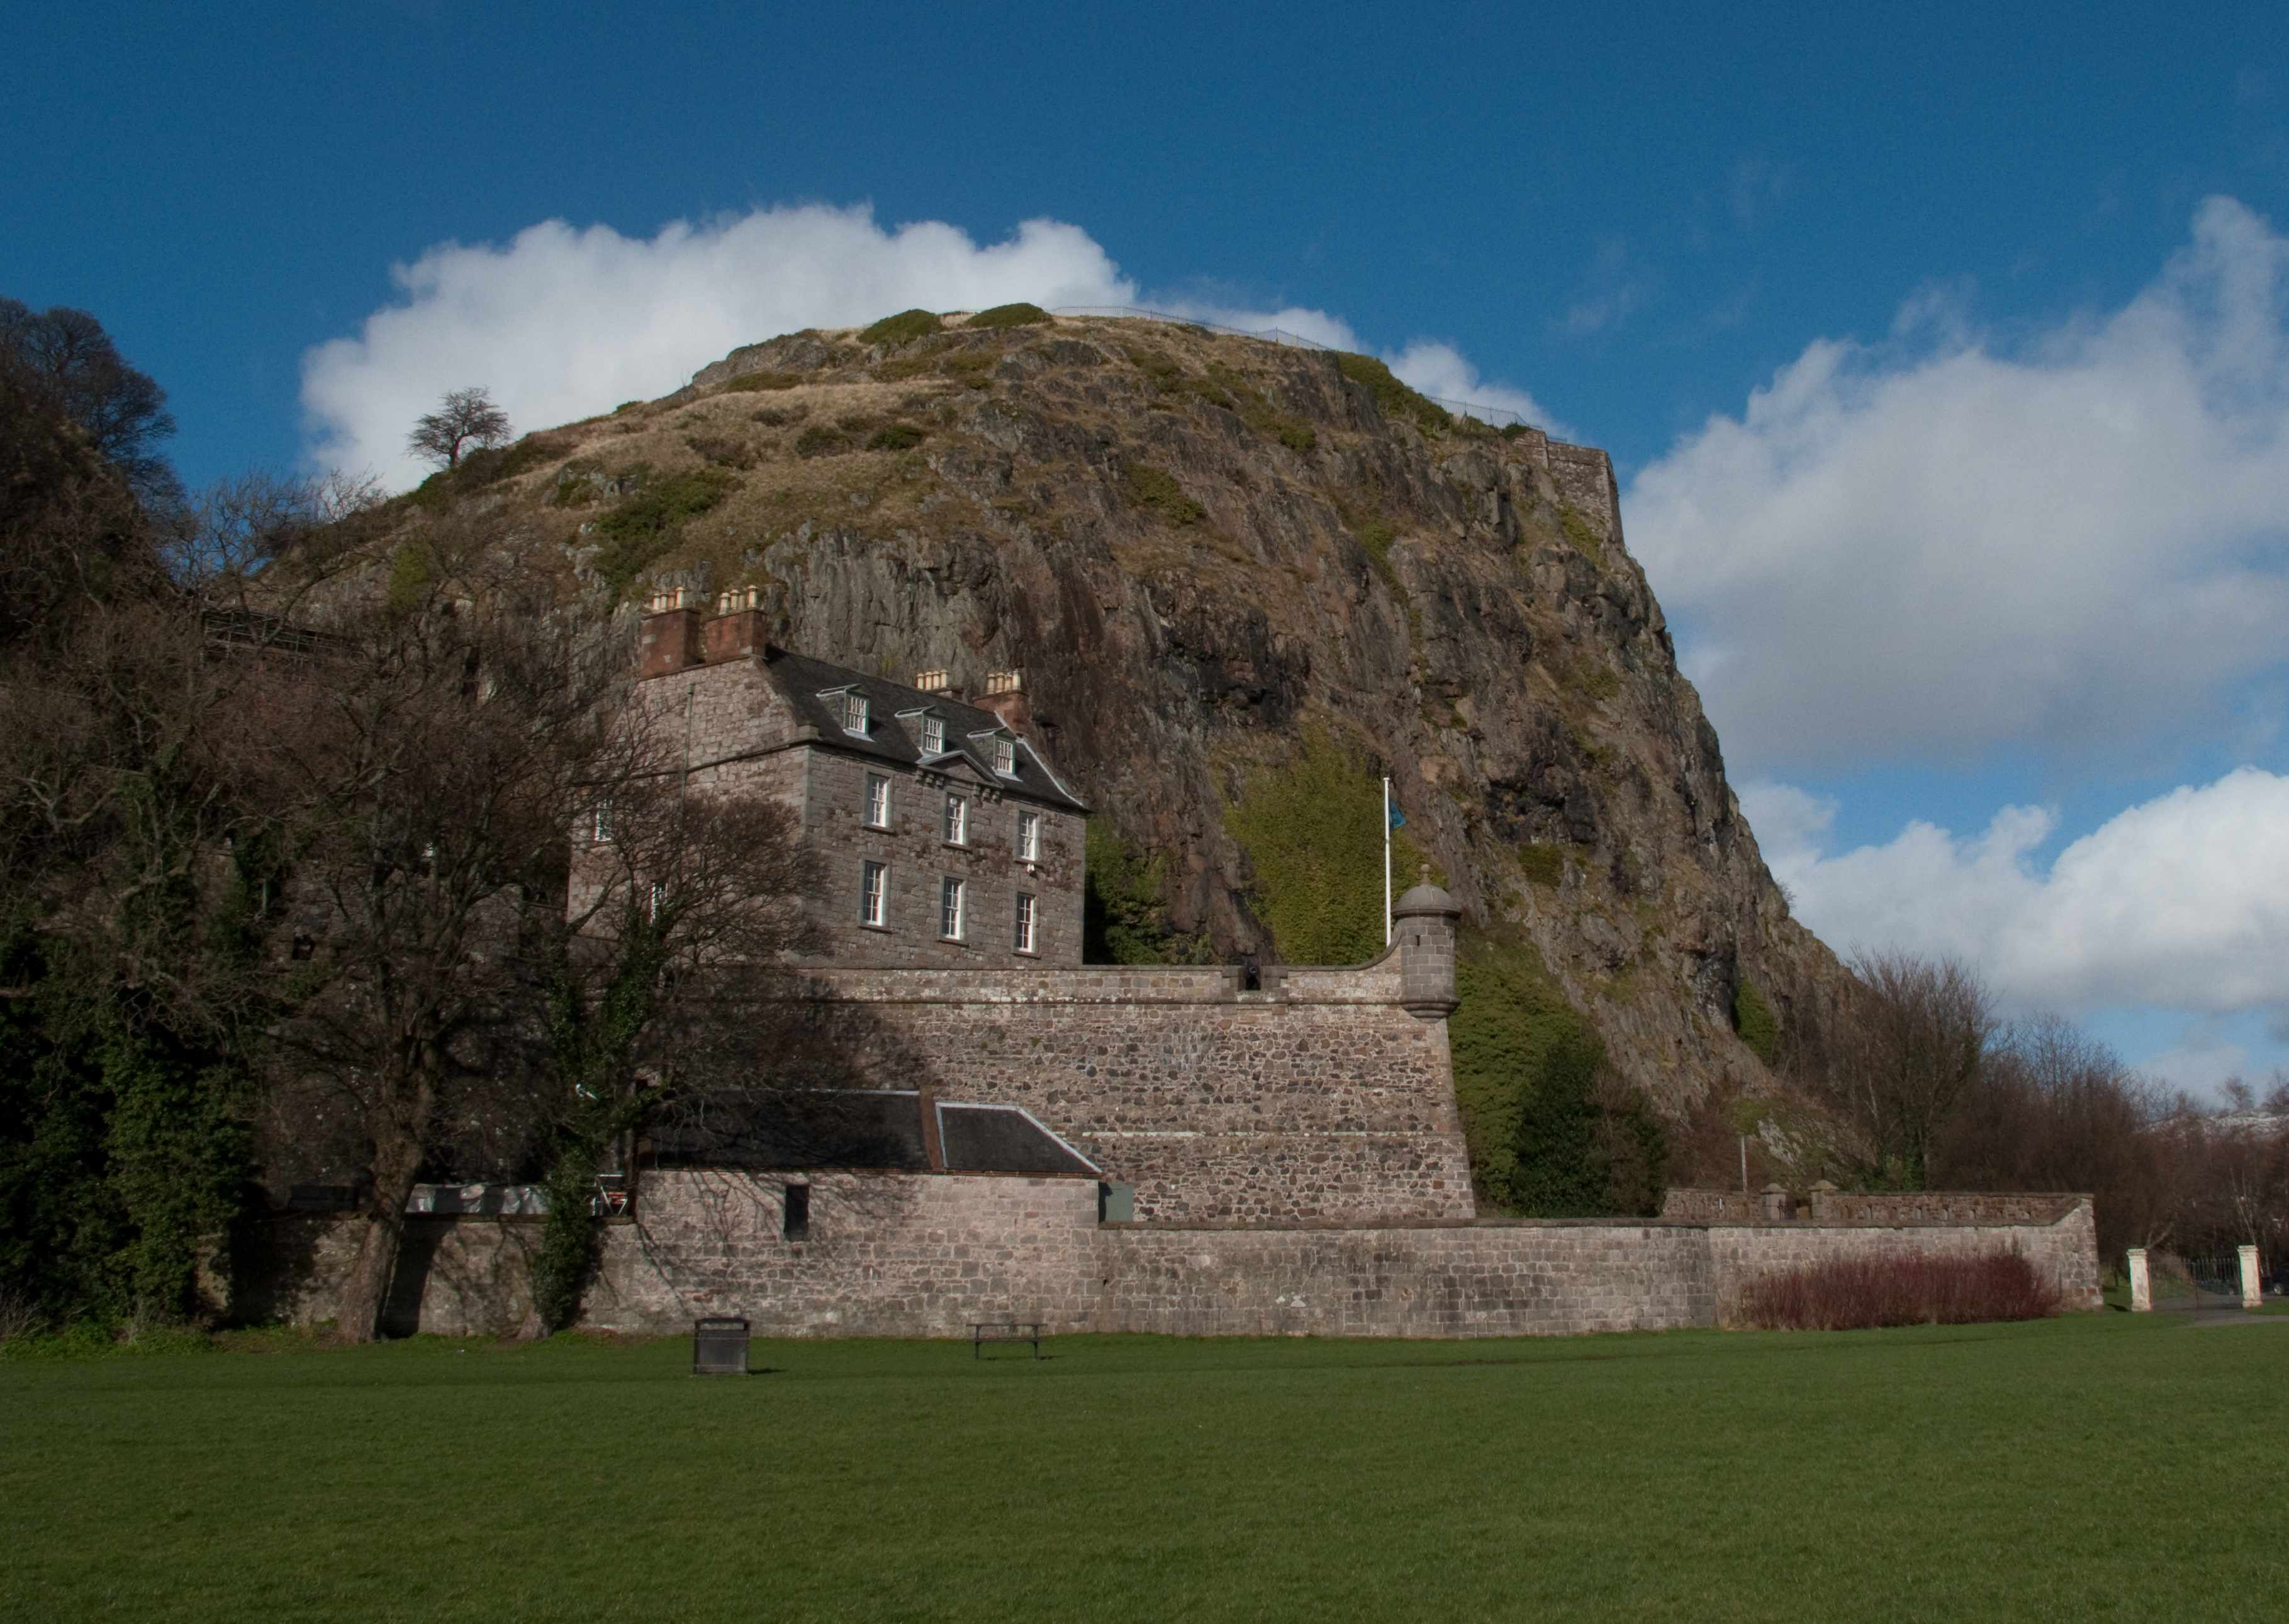 View across the river Clyde to Dumbarton Rock and the medieval Dumbarton Castle. (Photo by Martin W Holt via Getty Images)